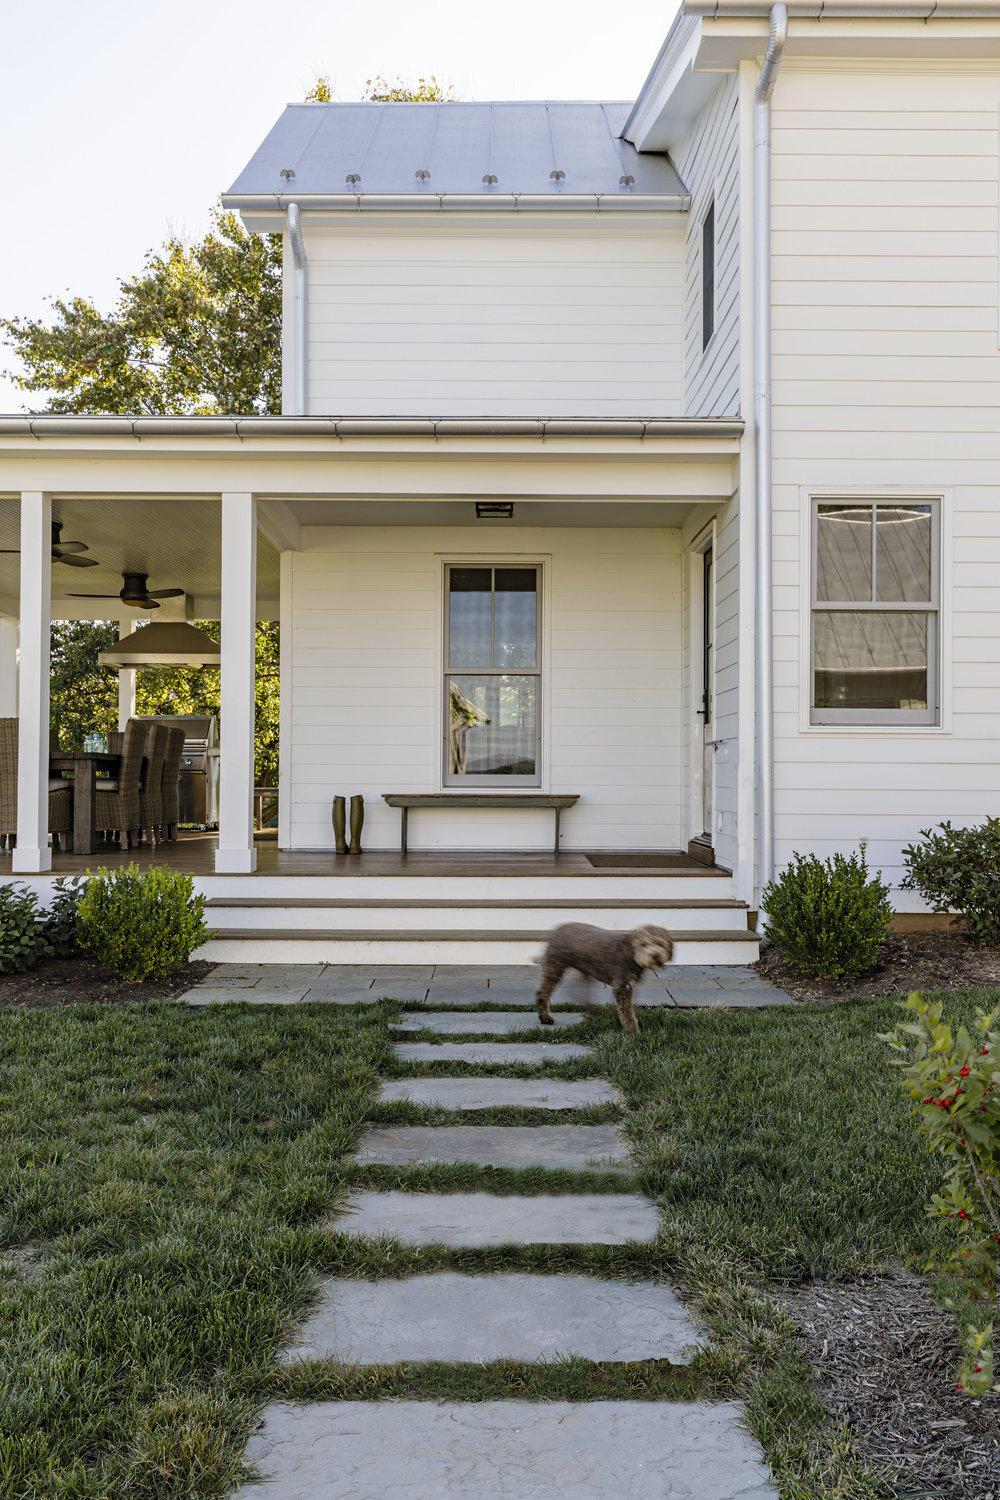 virginia_landscape-architect_farmhouse_modern-dog_Grounded.jpg